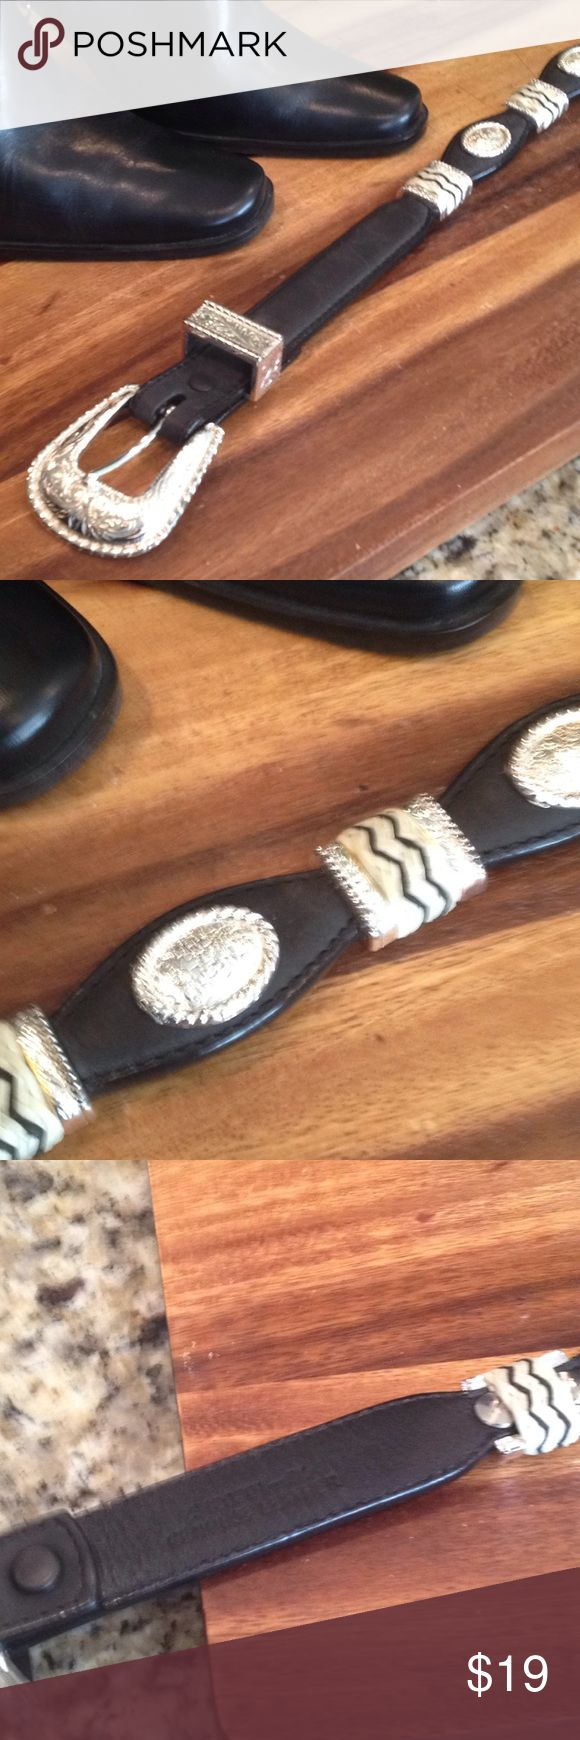 Western style belt Black leather and silver buckle  Western style belt Size 32 waist Accessories Belts